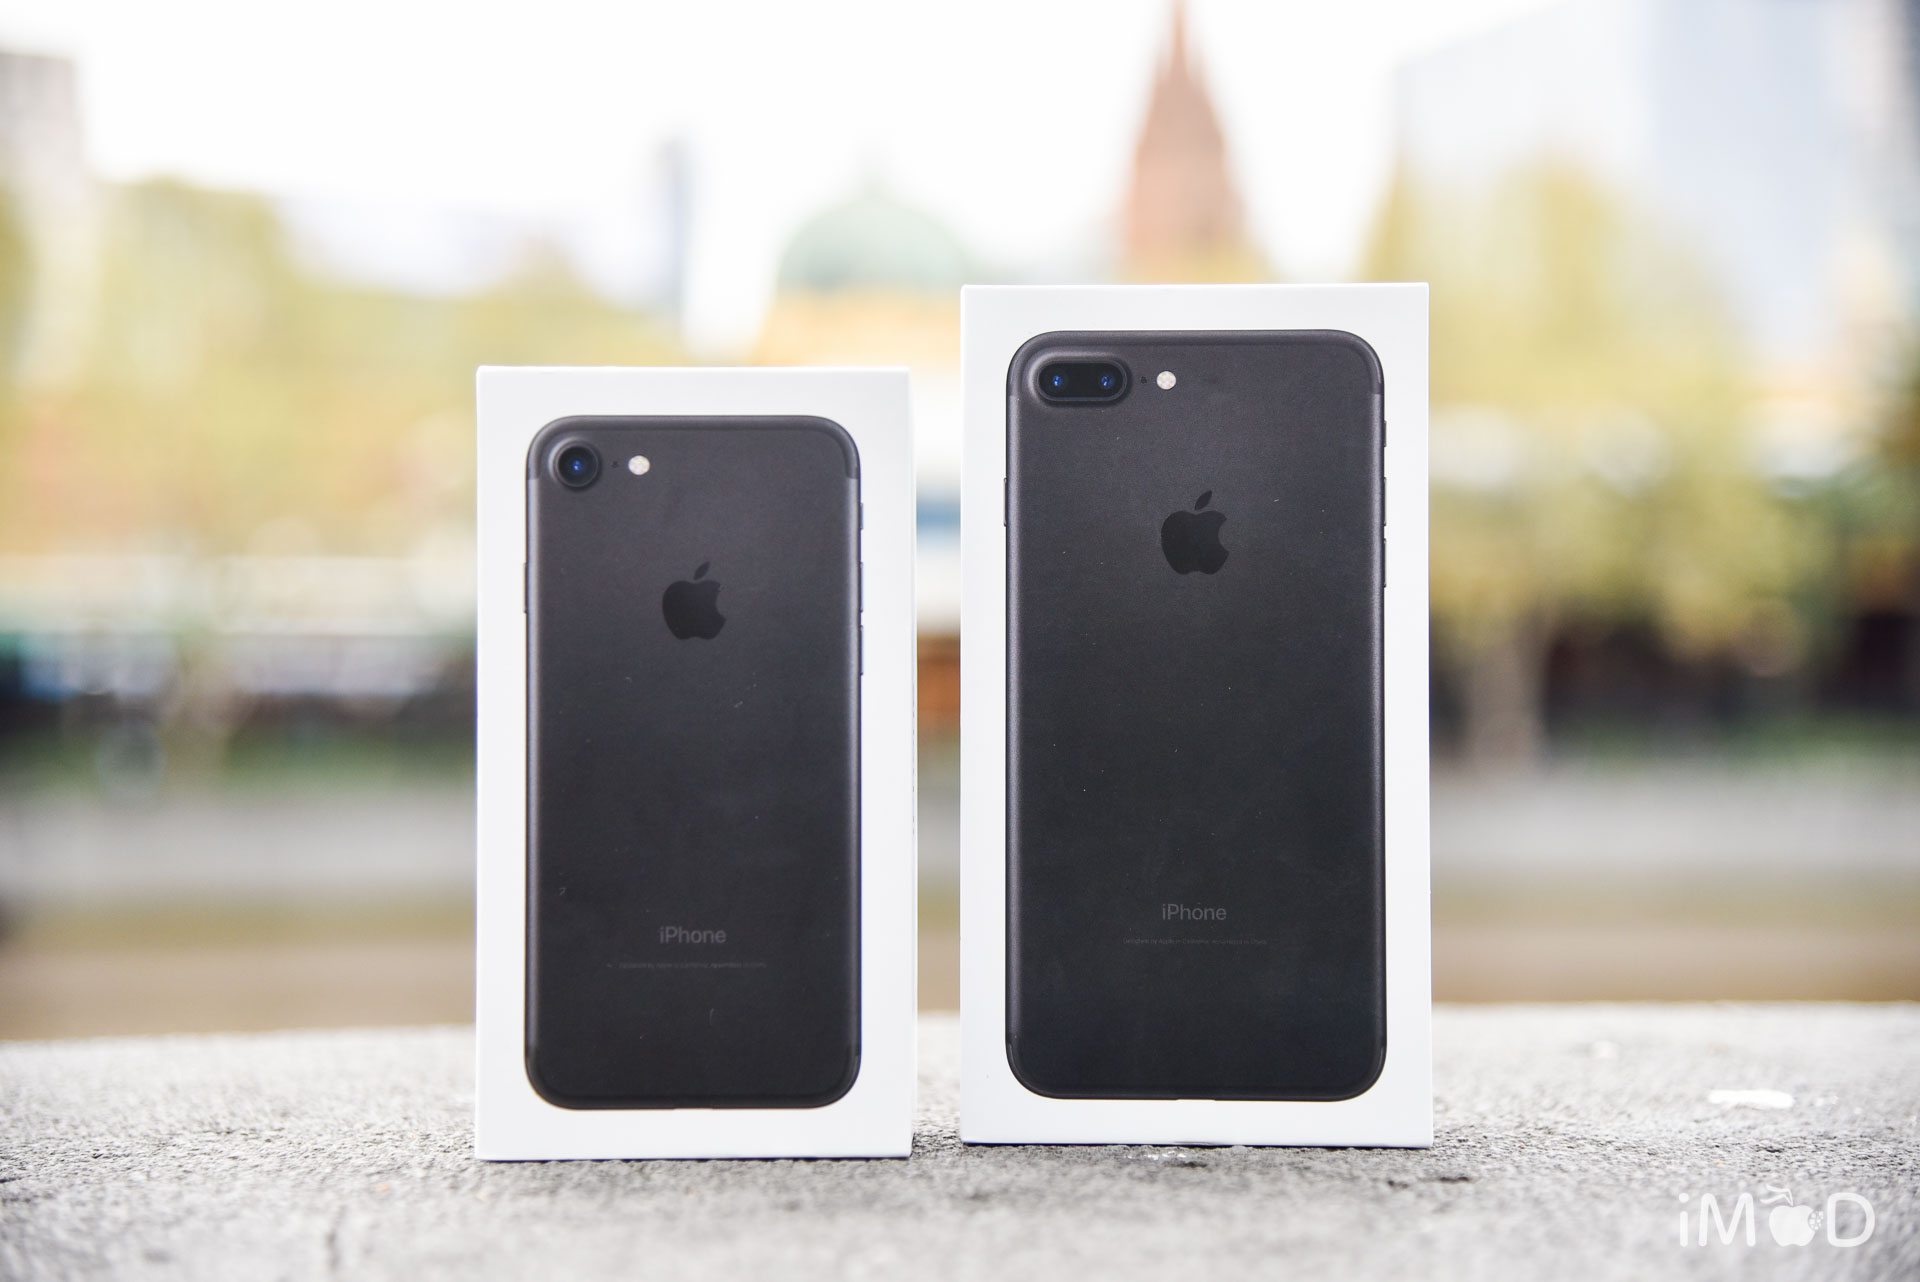 iphone-7-7plus-review-1-6